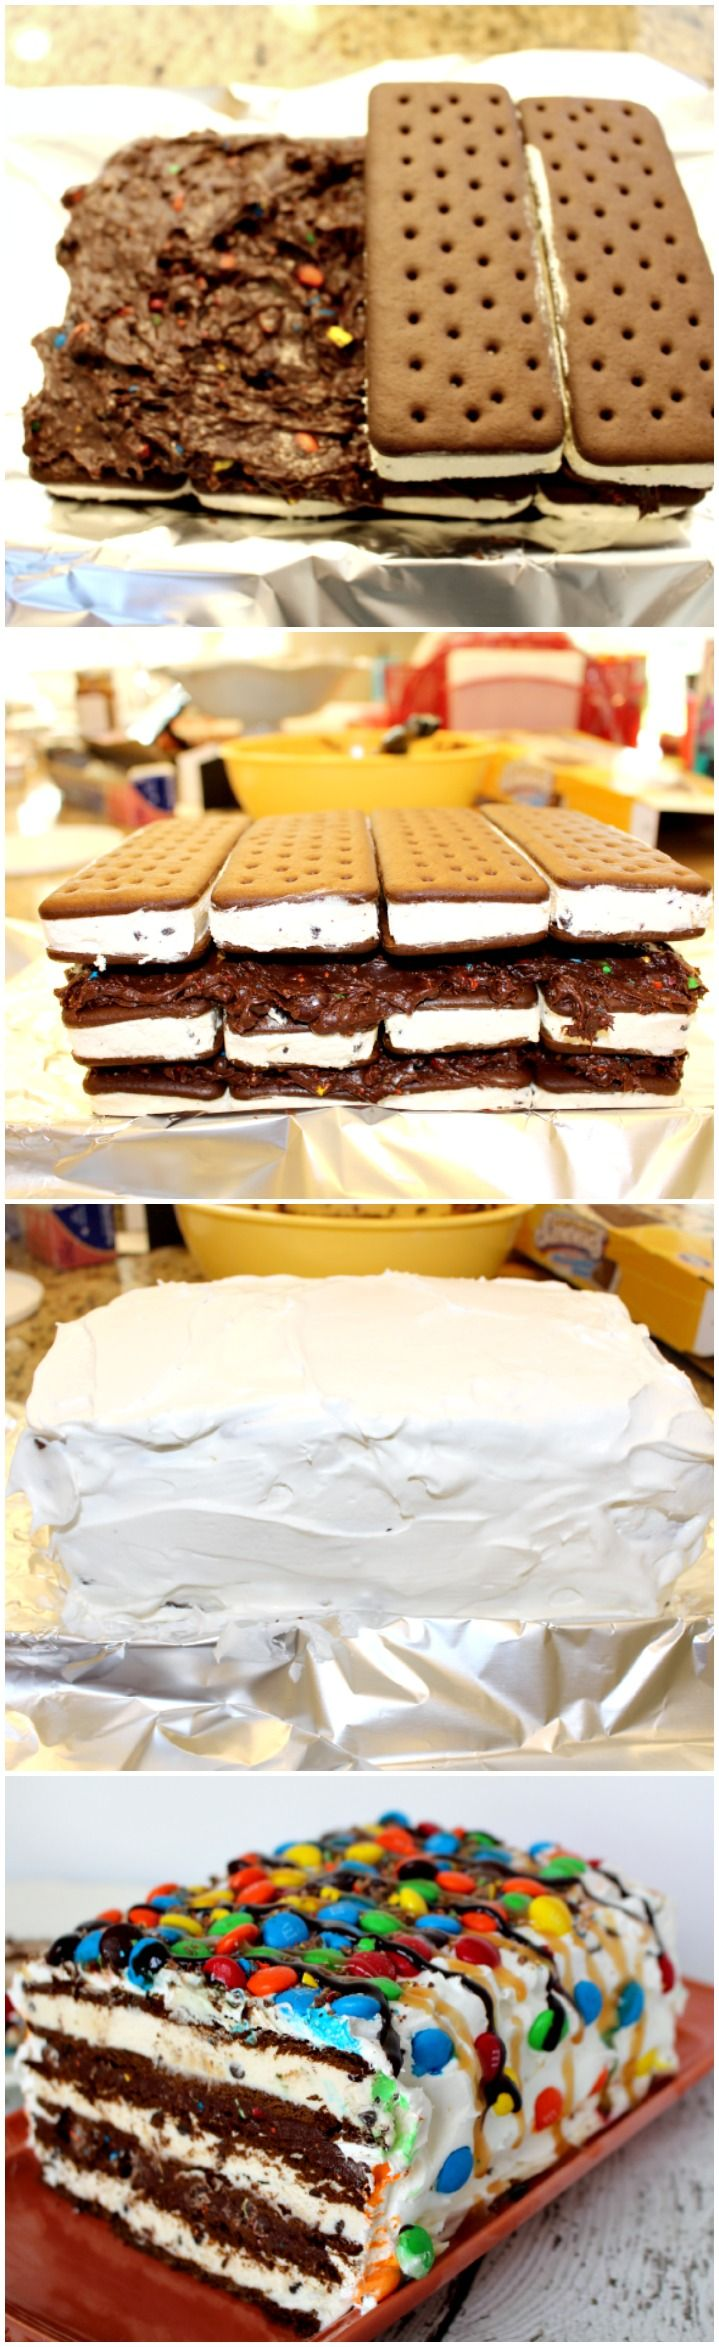 Ice Cream Sandwich Cake - the easiest dessert ever!